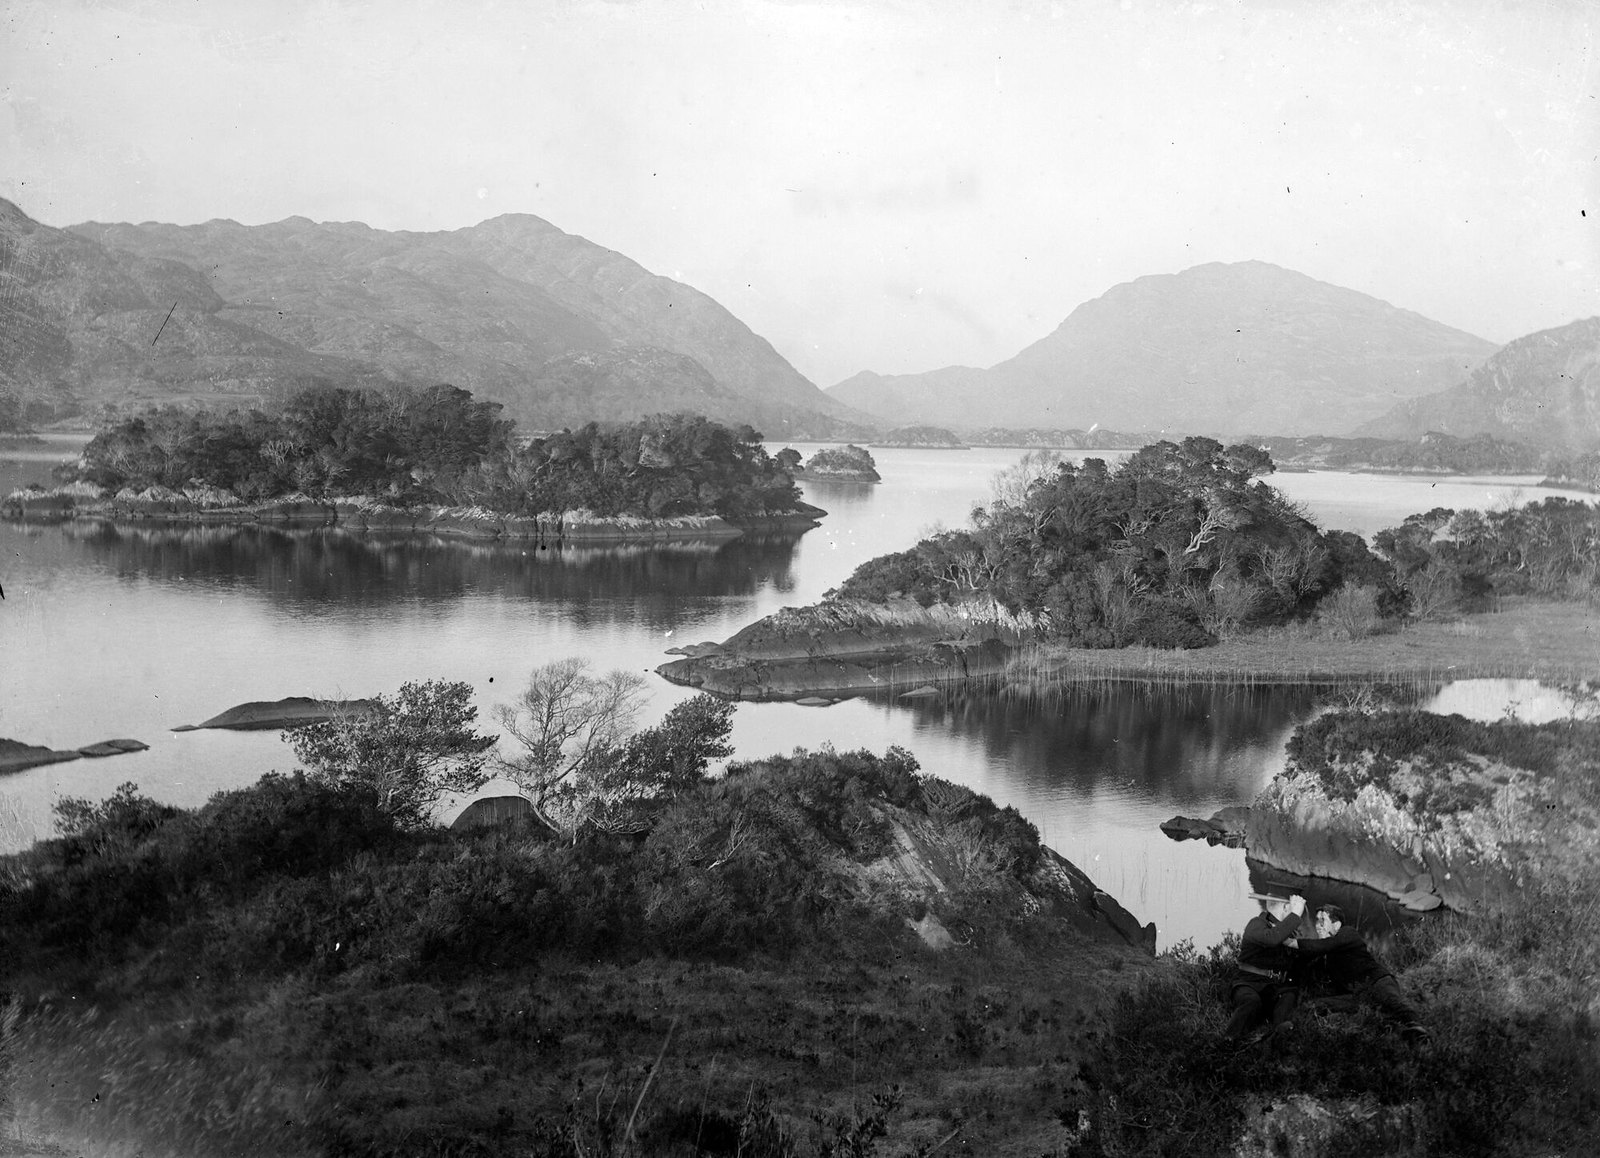 """Lake surrounded by mountains in an unknown location"" (is lakes of Killarney) 